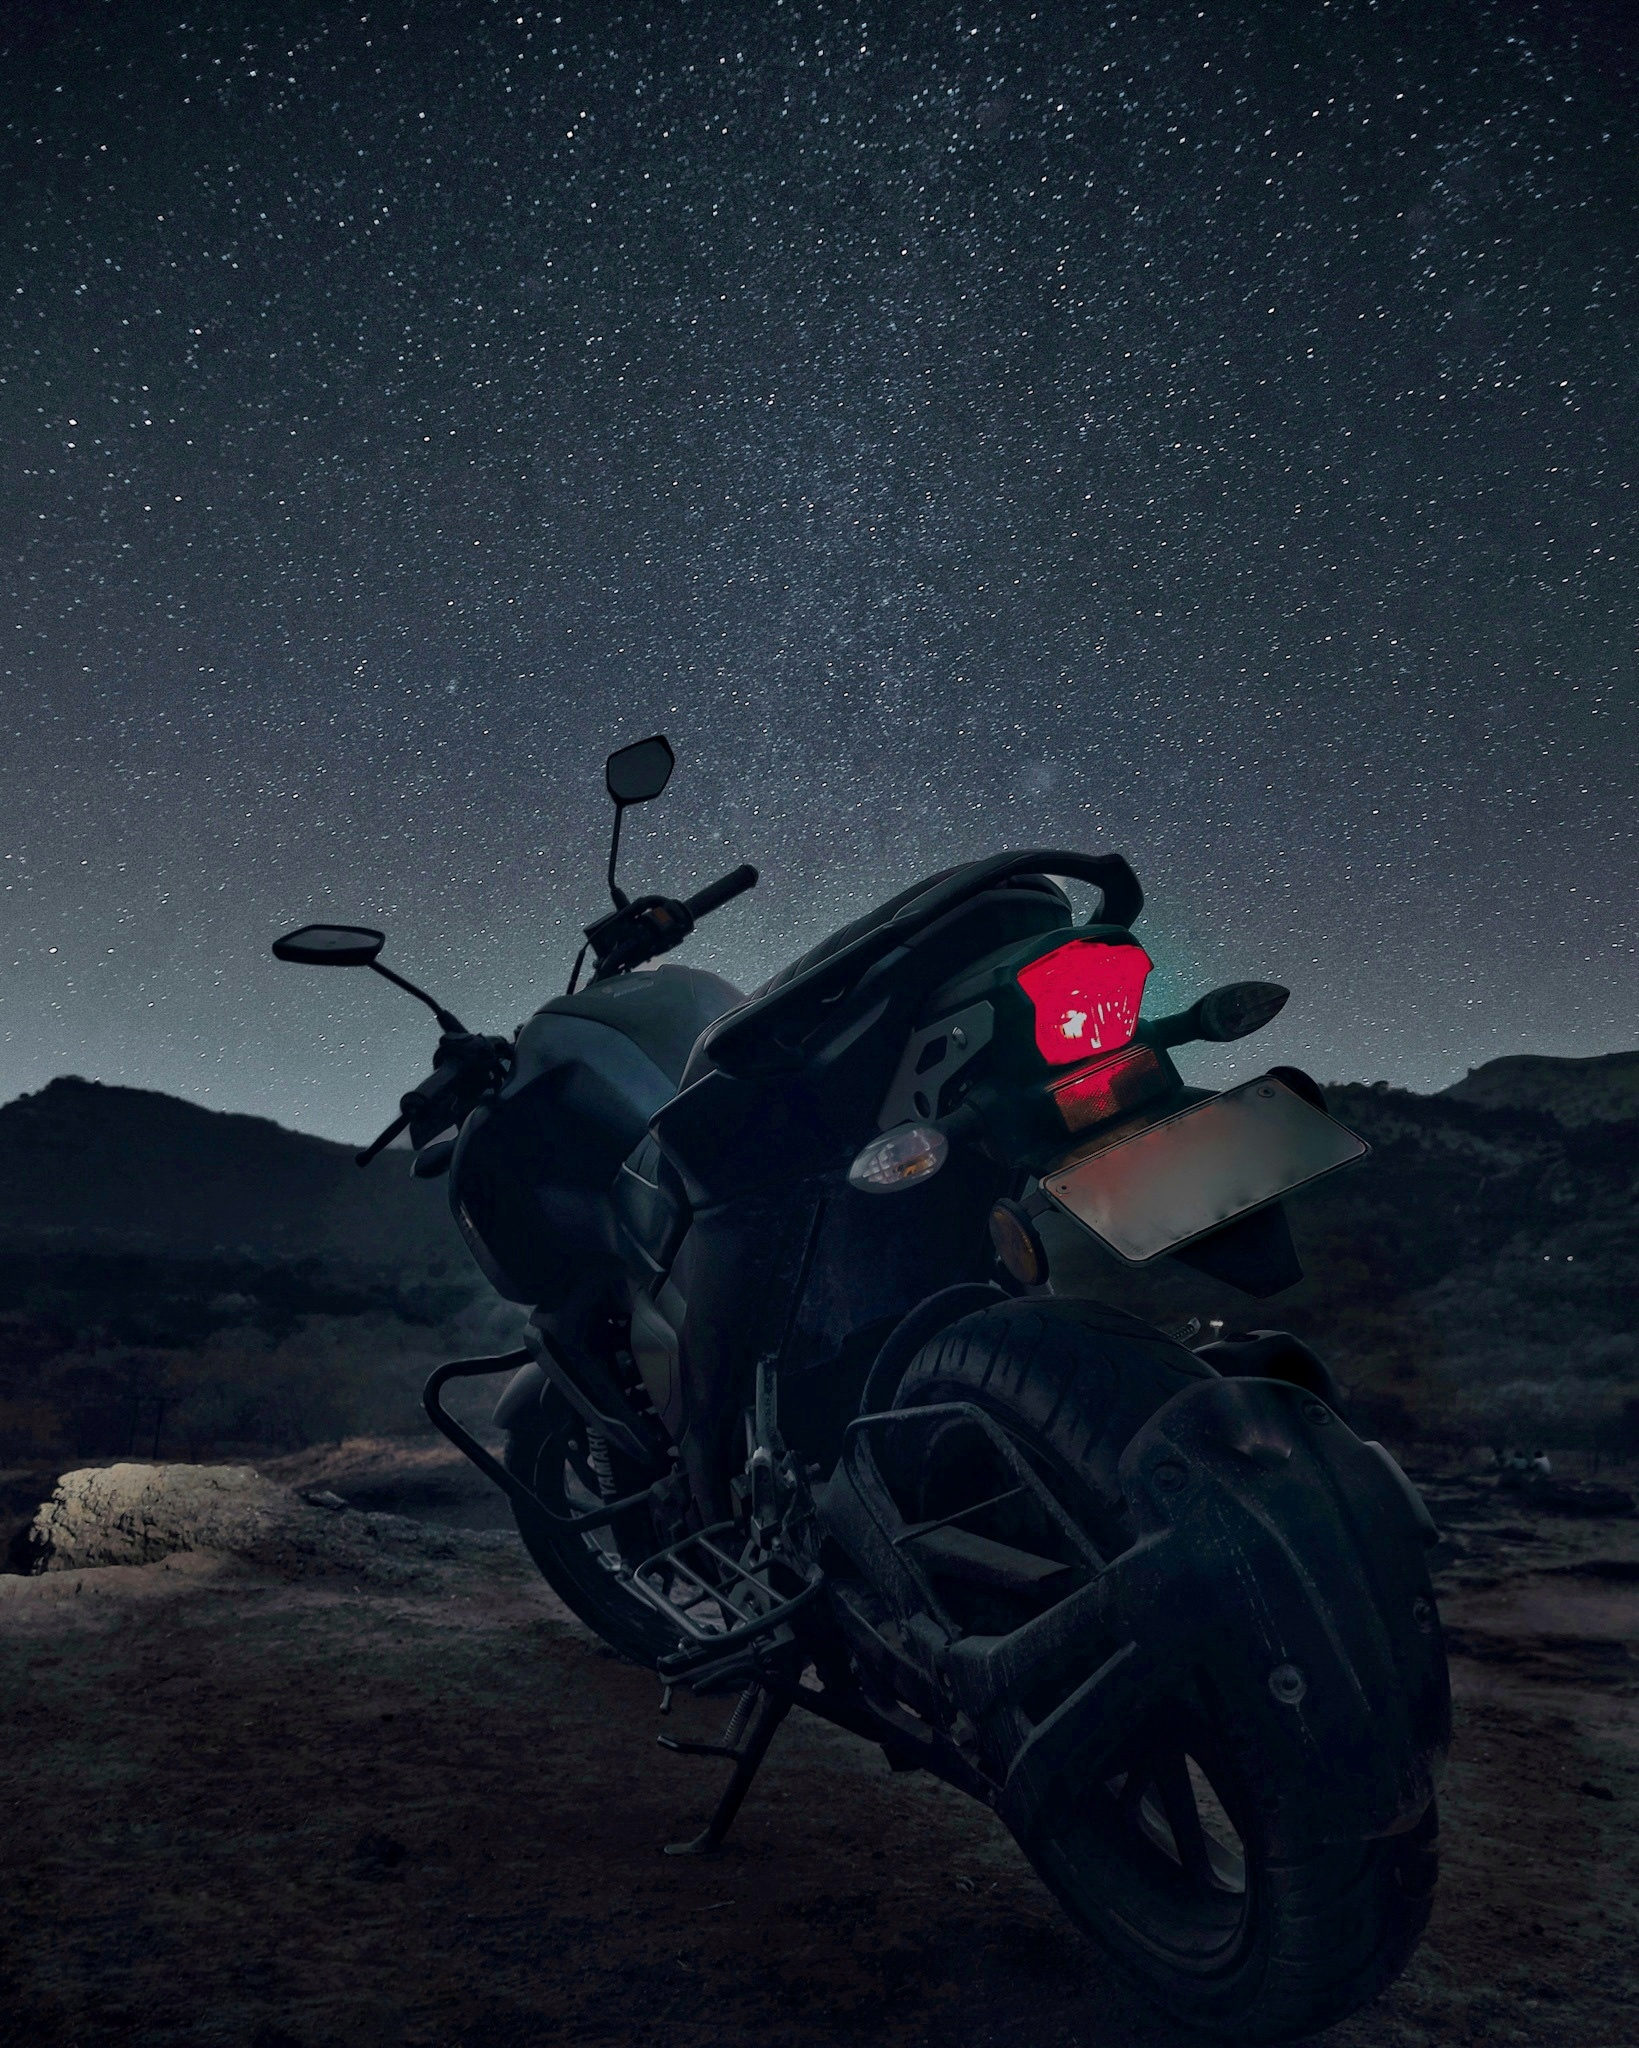 Bike under the night sky